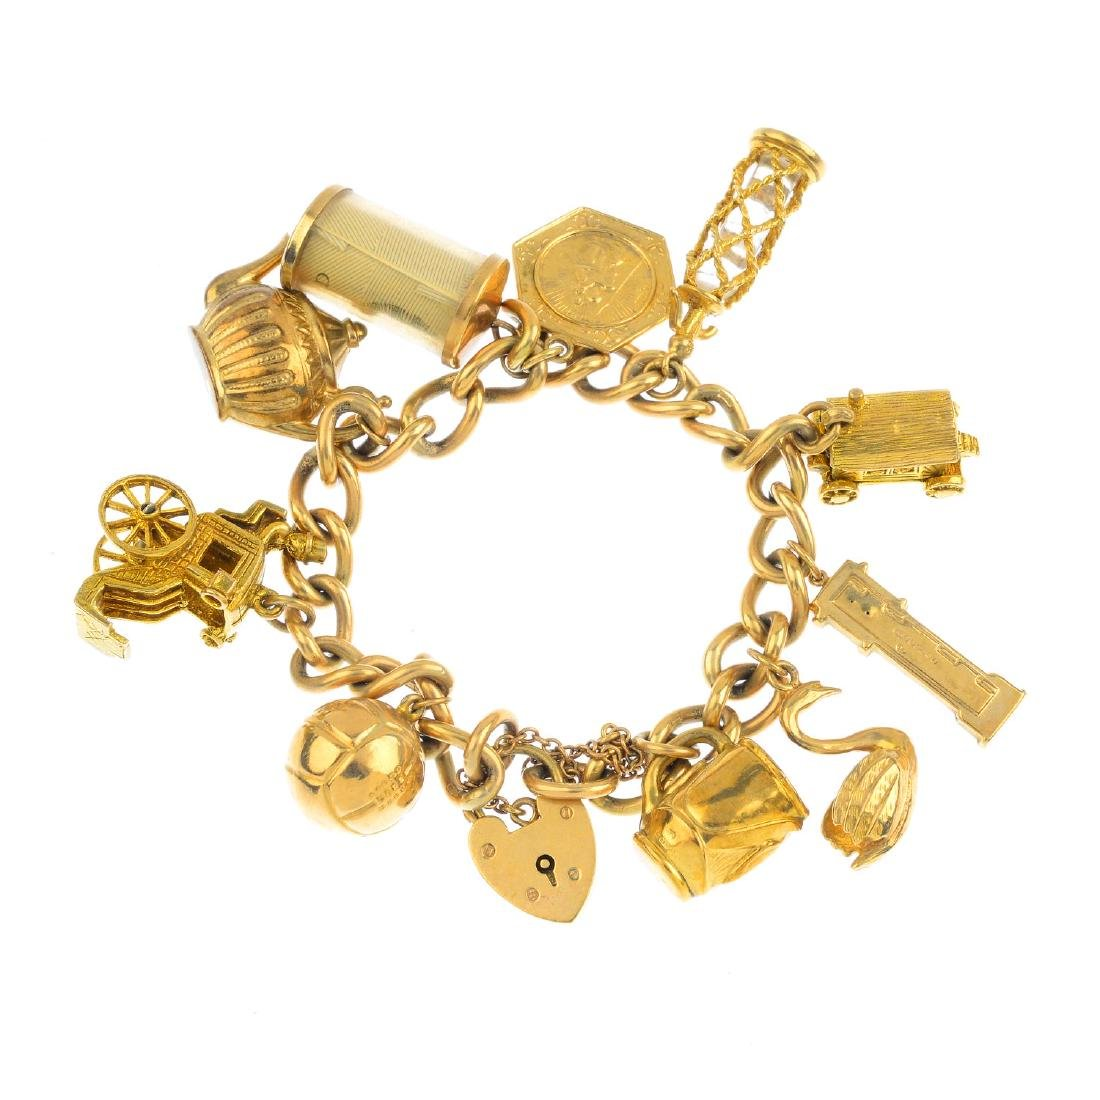 A mid 20th century 9ct gold charm bracelet. The